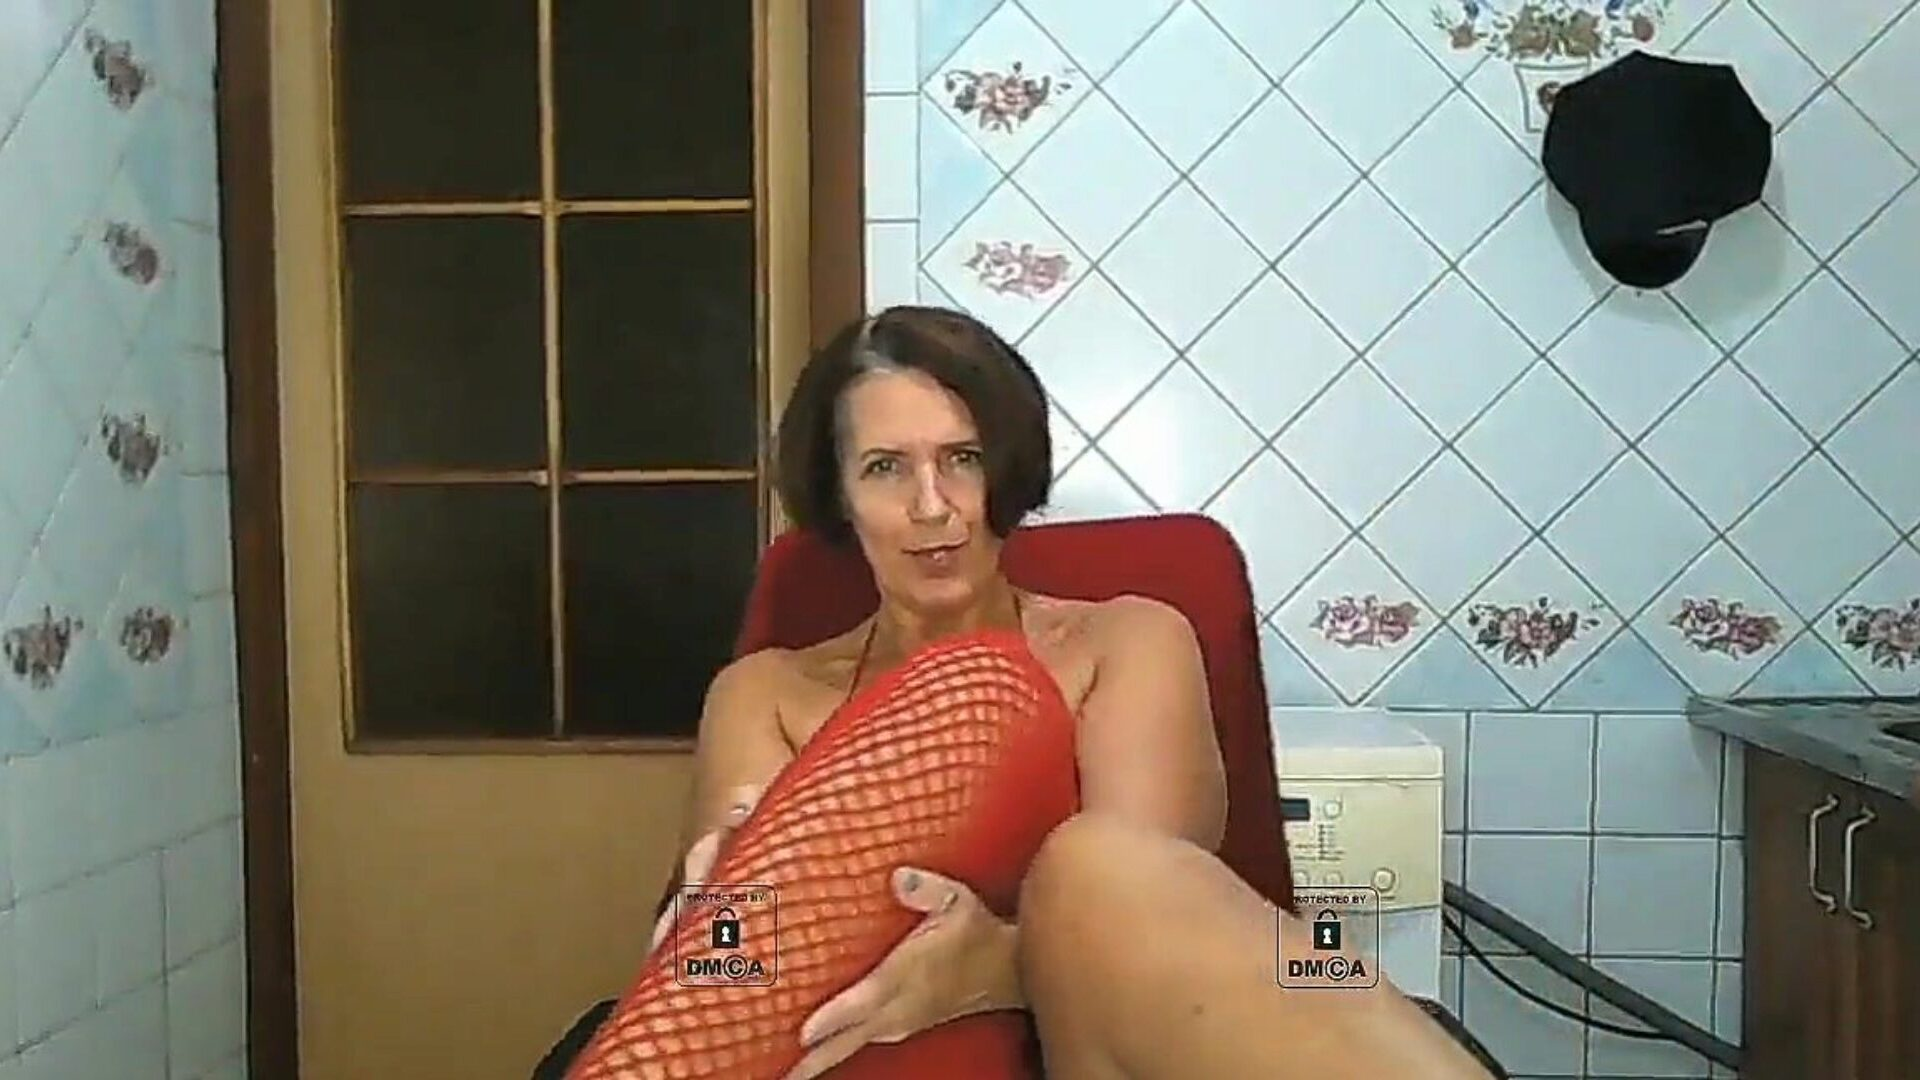 Attractive grandma with bare zeppelins in red Attractive older chick misses hookup and talking on webcam Shows a aged hot body wiggles her a-hole munches naked marangos in red fishnet panties and nylons